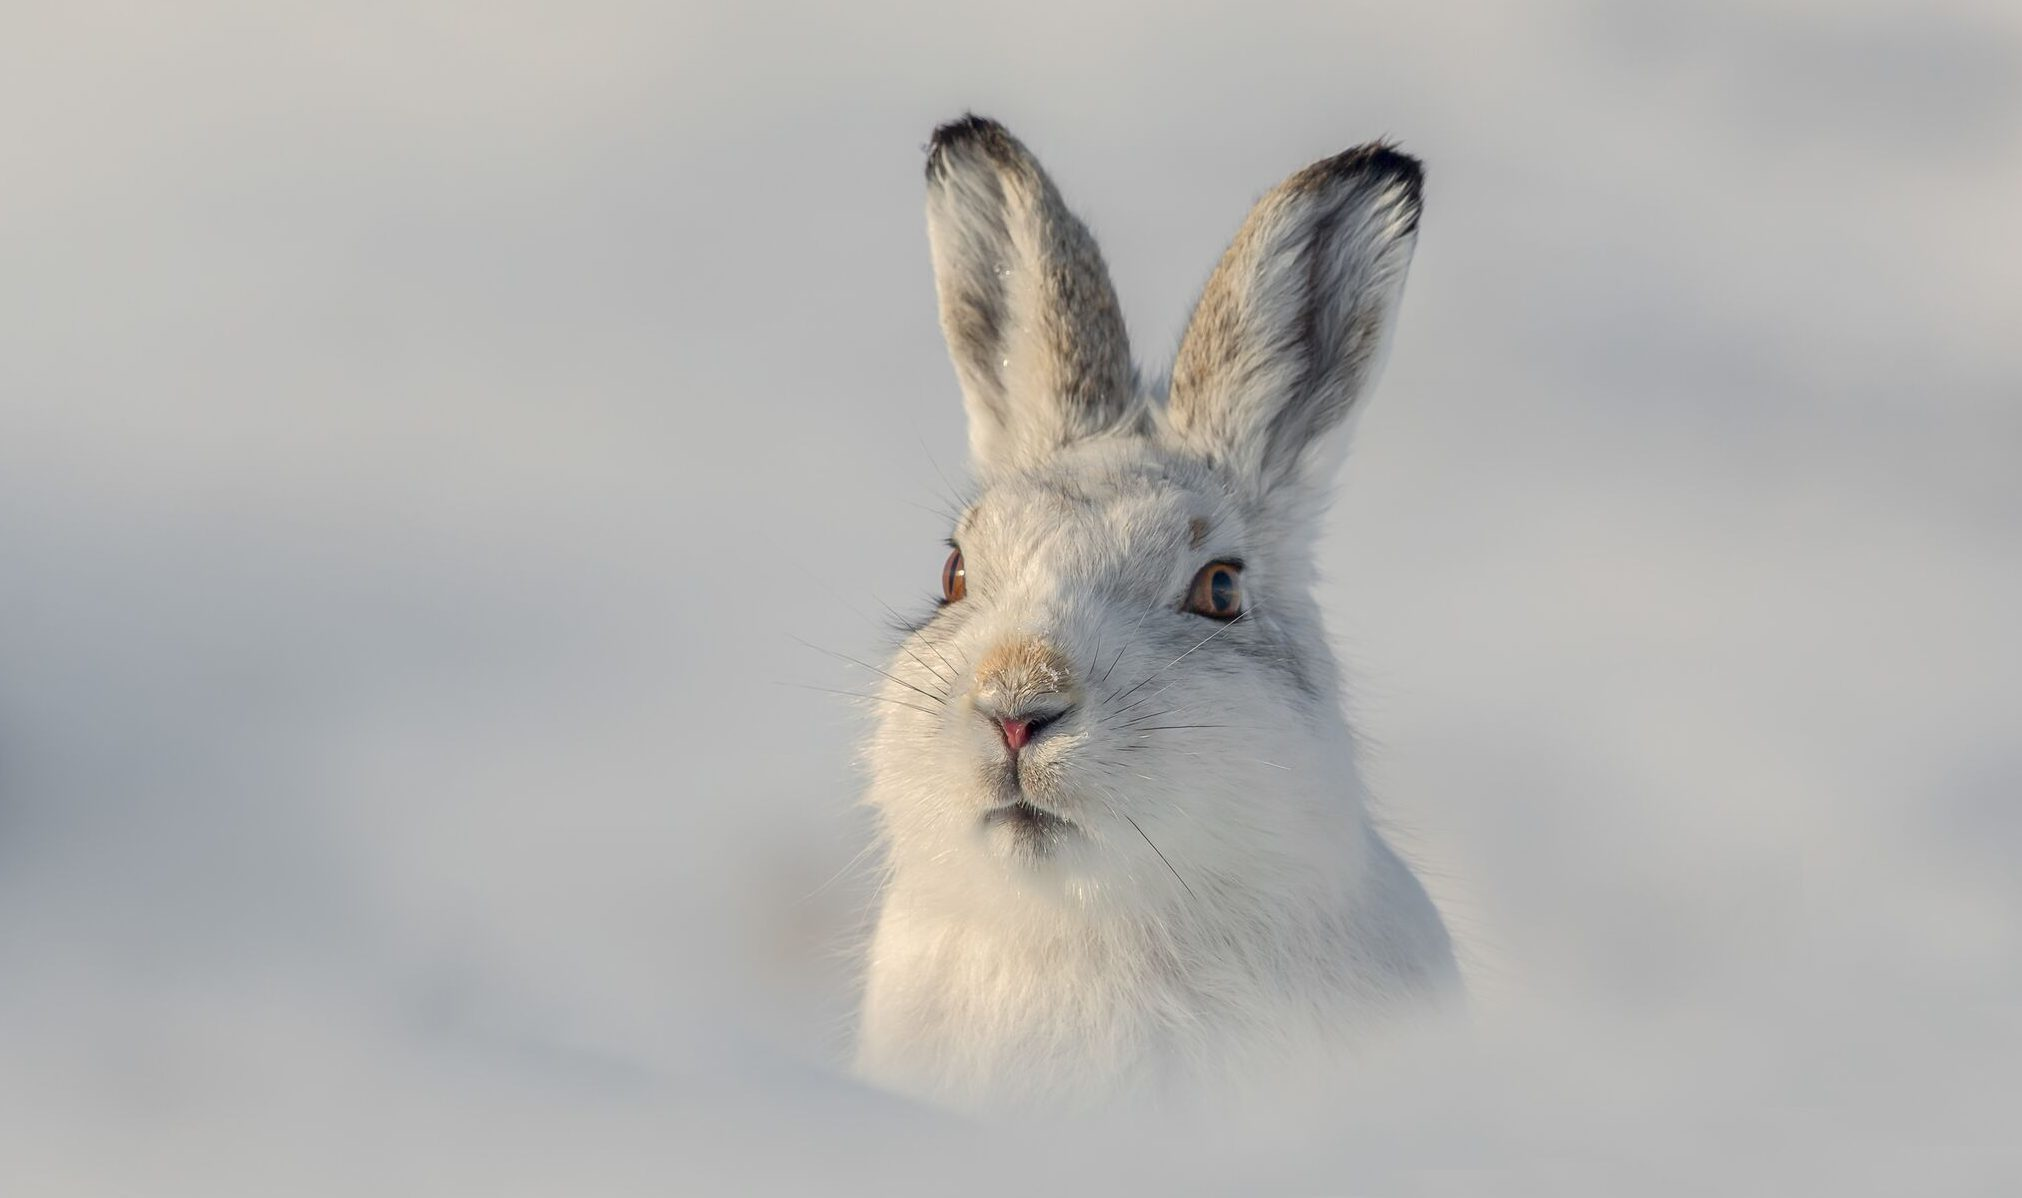 Mountain hare by Raymond Leinster